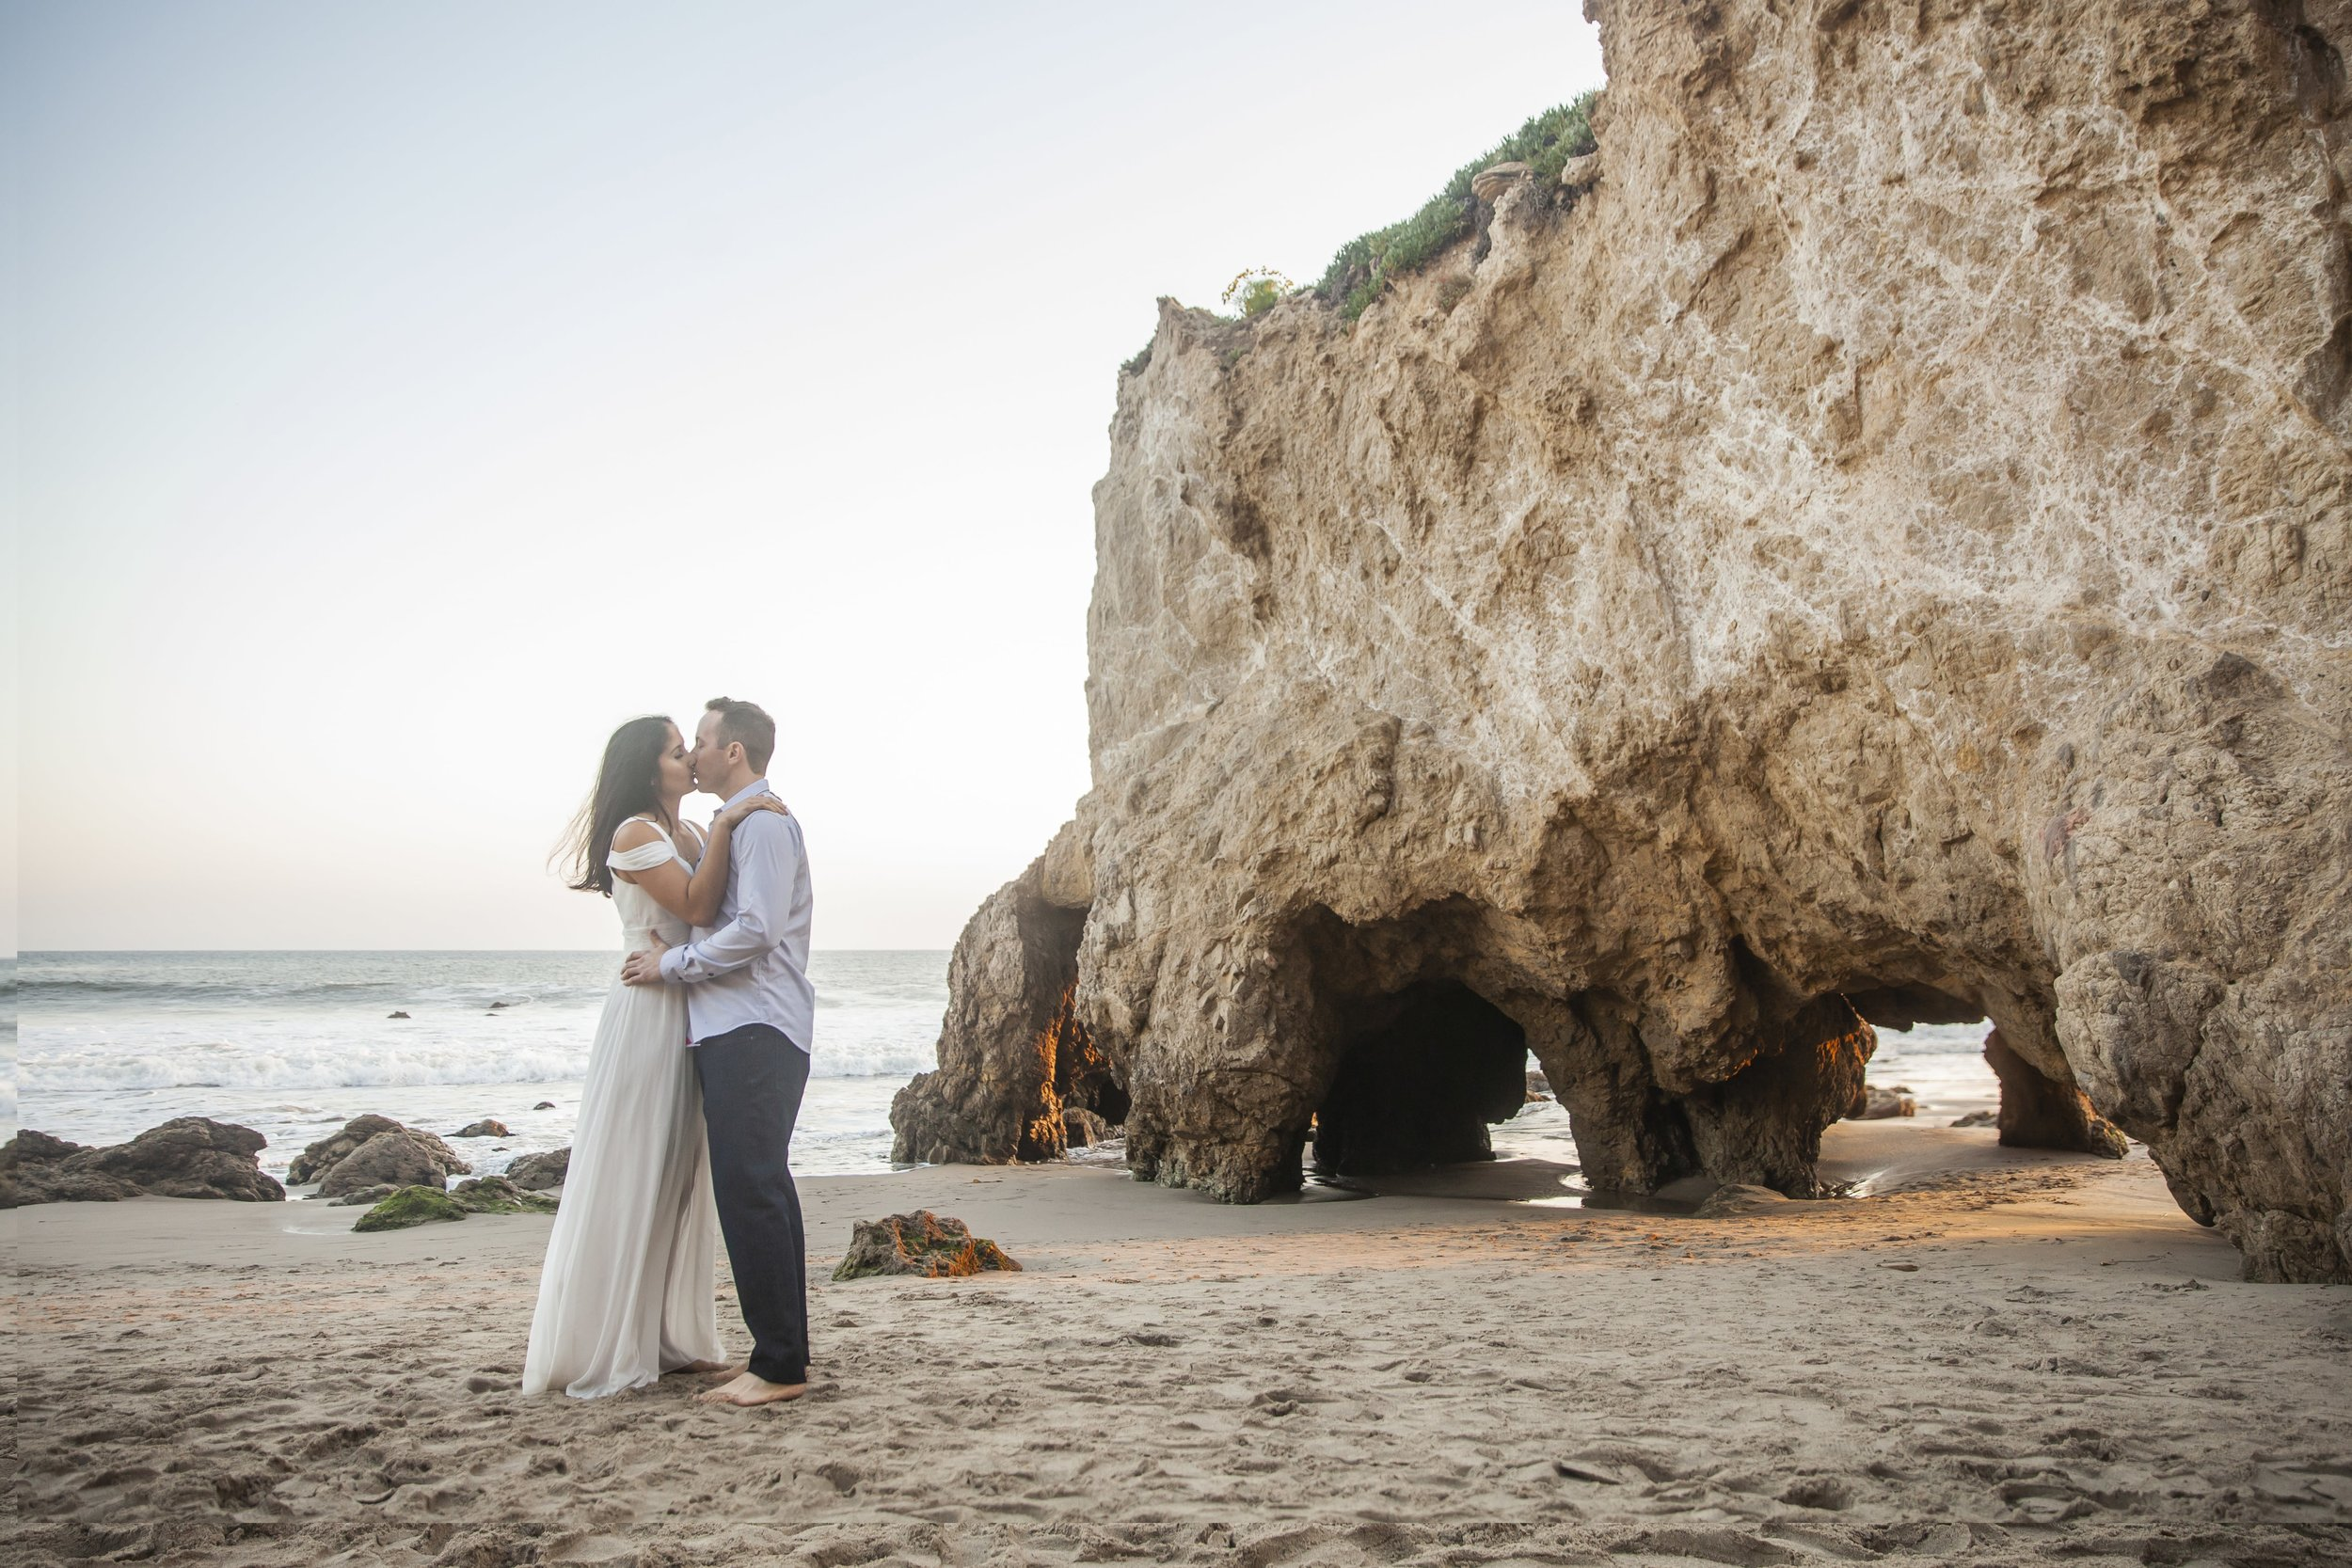 California Engagement Photography - Man and woman kissing in front of a large rock on a California beach.